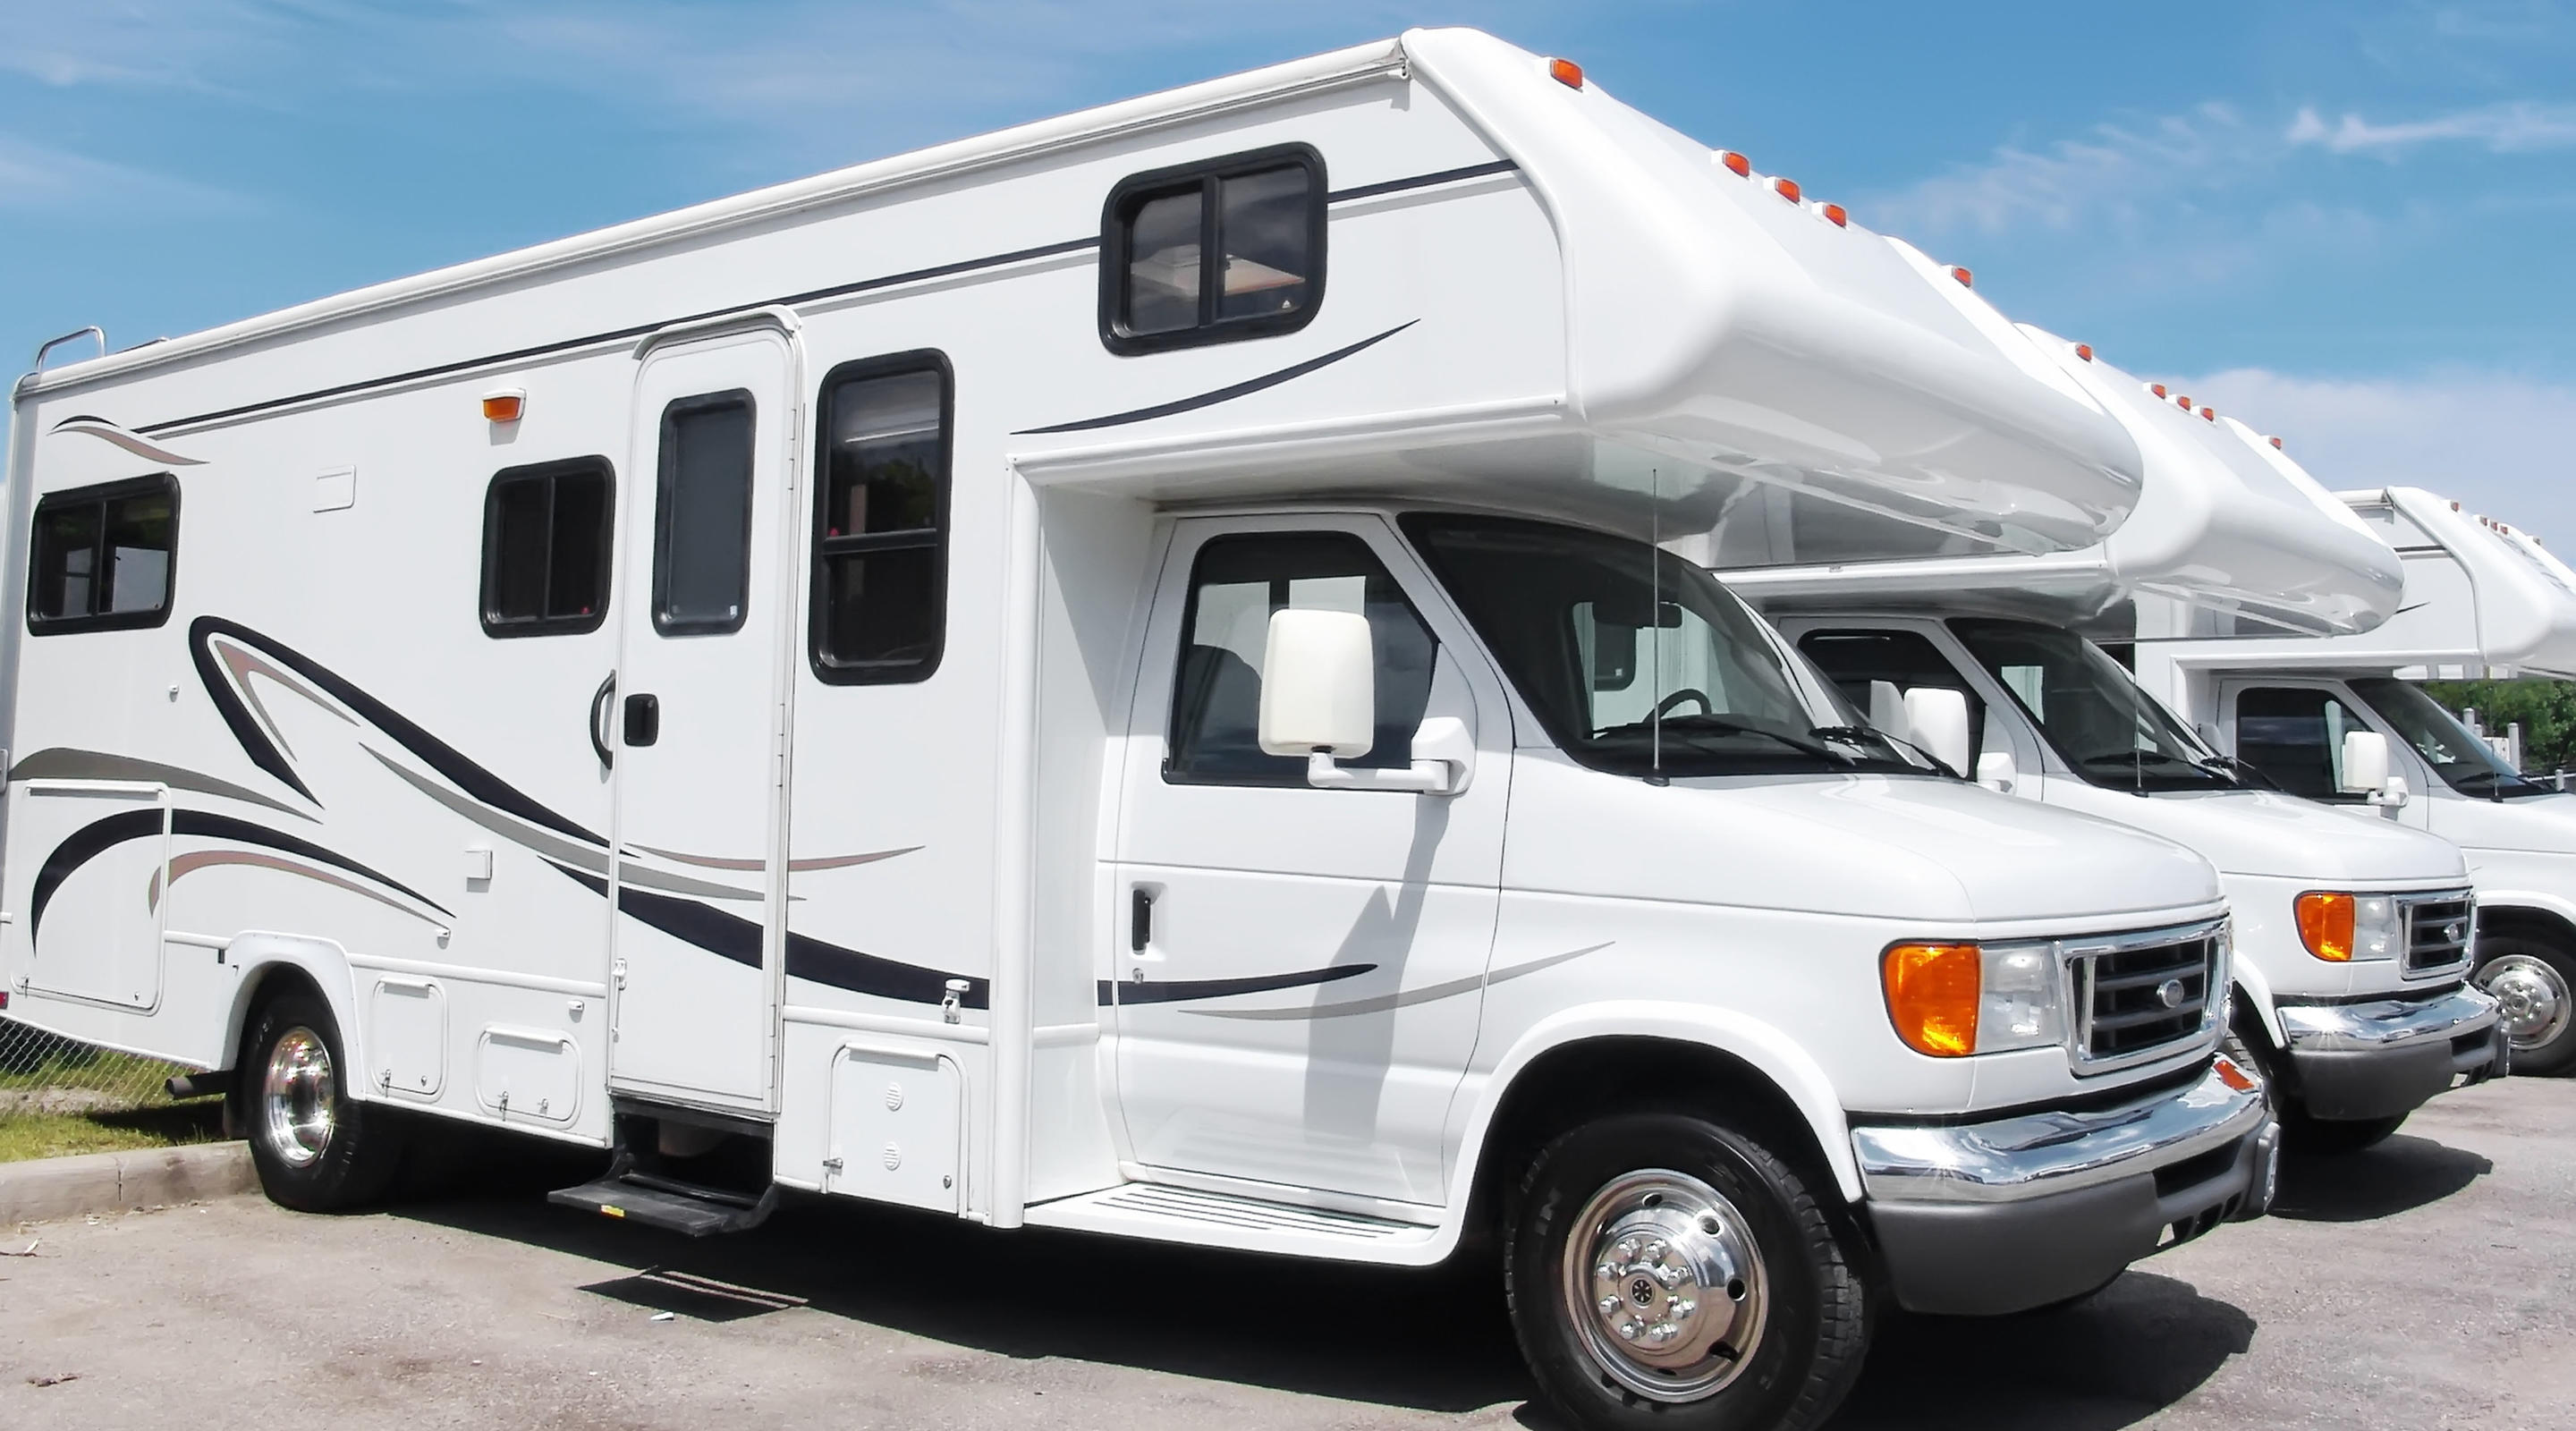 Winterize Your Vehicle With These RV Parts for Safe Storage